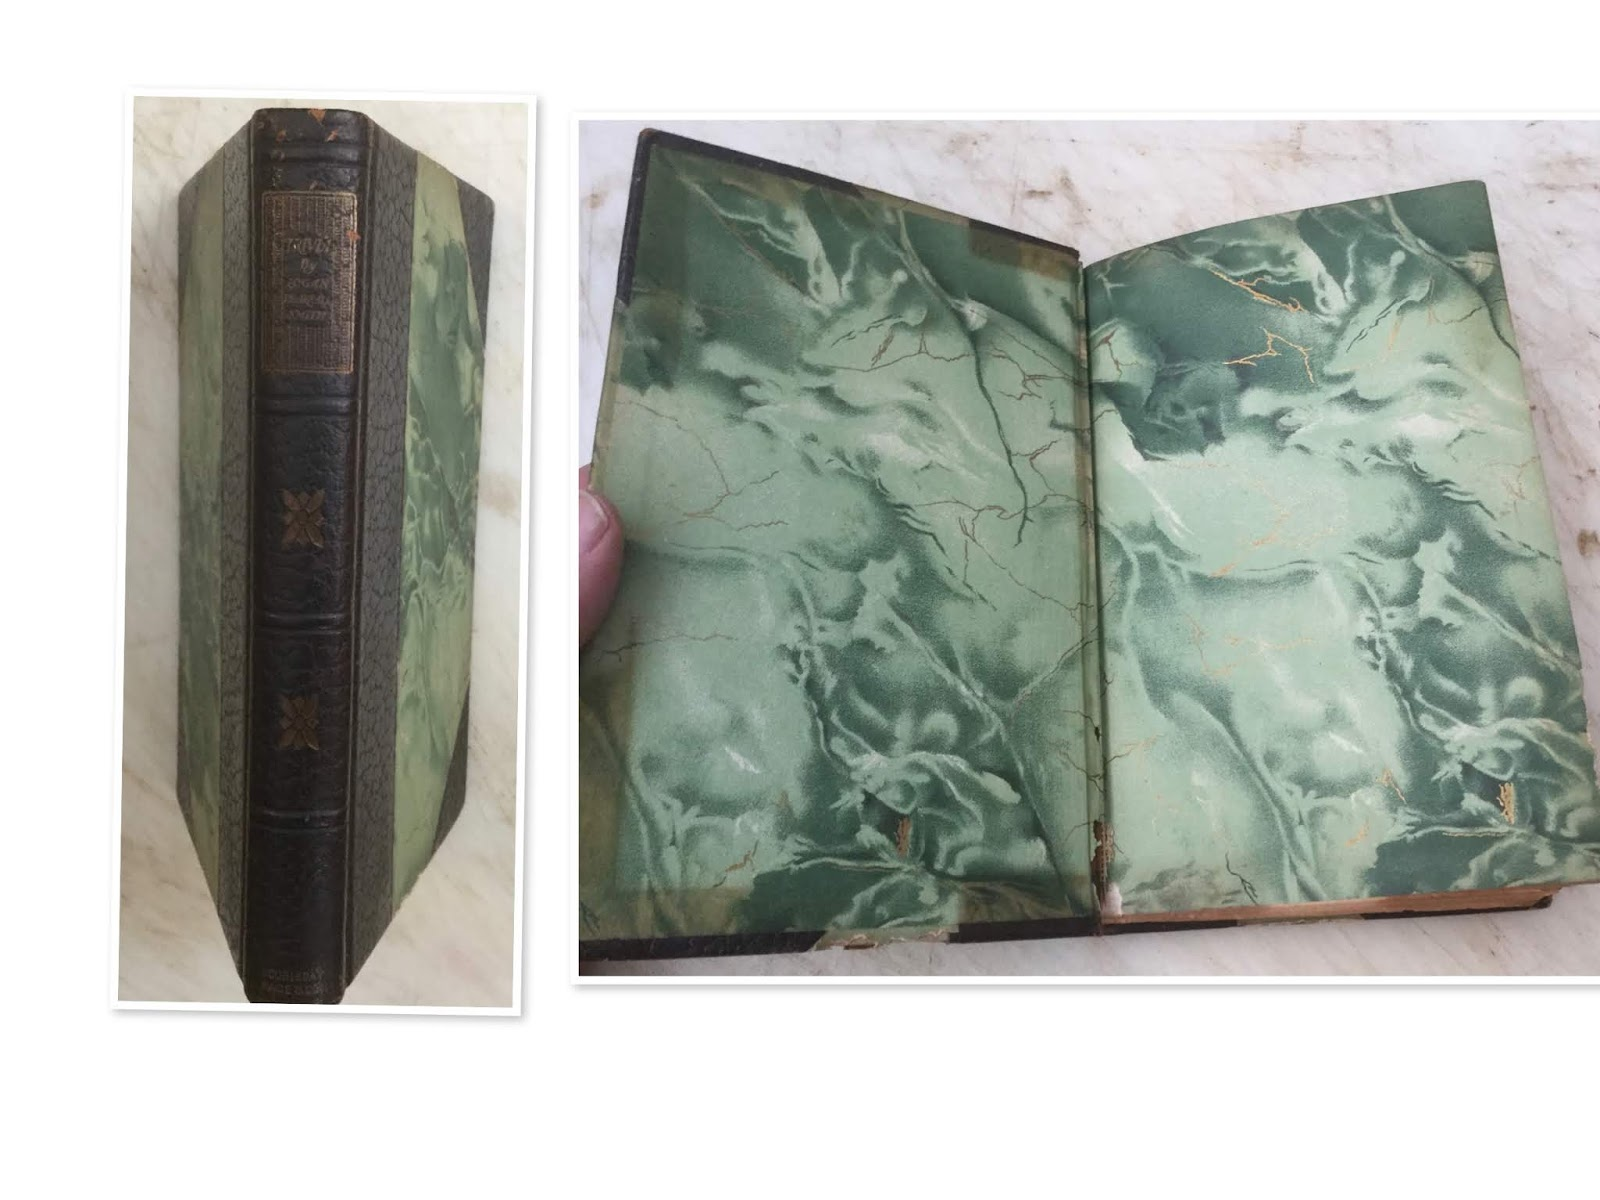 New Fashion Old Leather Binding Books Brown And Green Color For Manuscript Or Printing Book